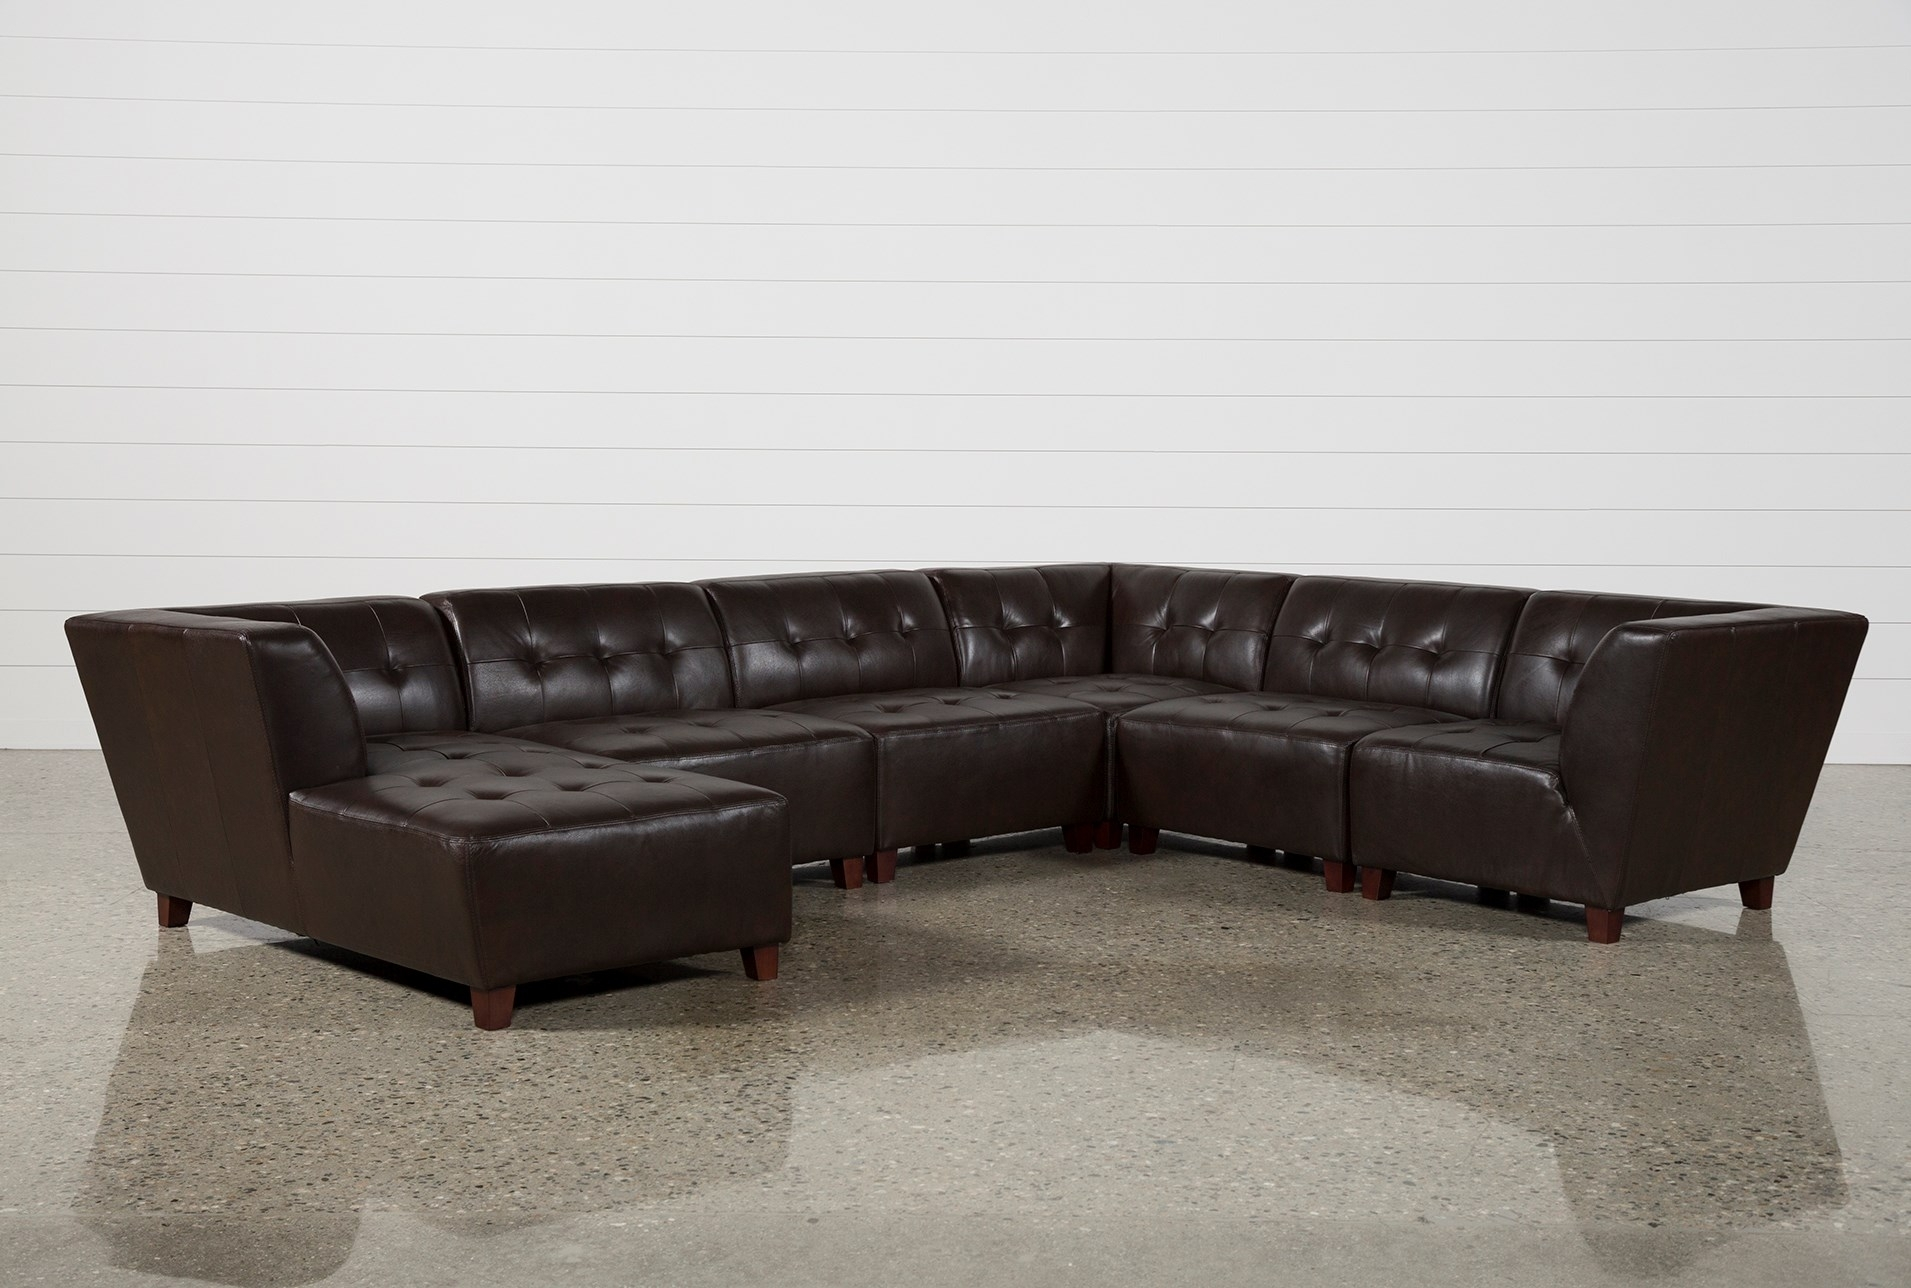 Carrington 6 Piece Sectional Sofa Sam S Club With Idea 12 within Sectional Sofas at Sam's Club (Image 5 of 15)